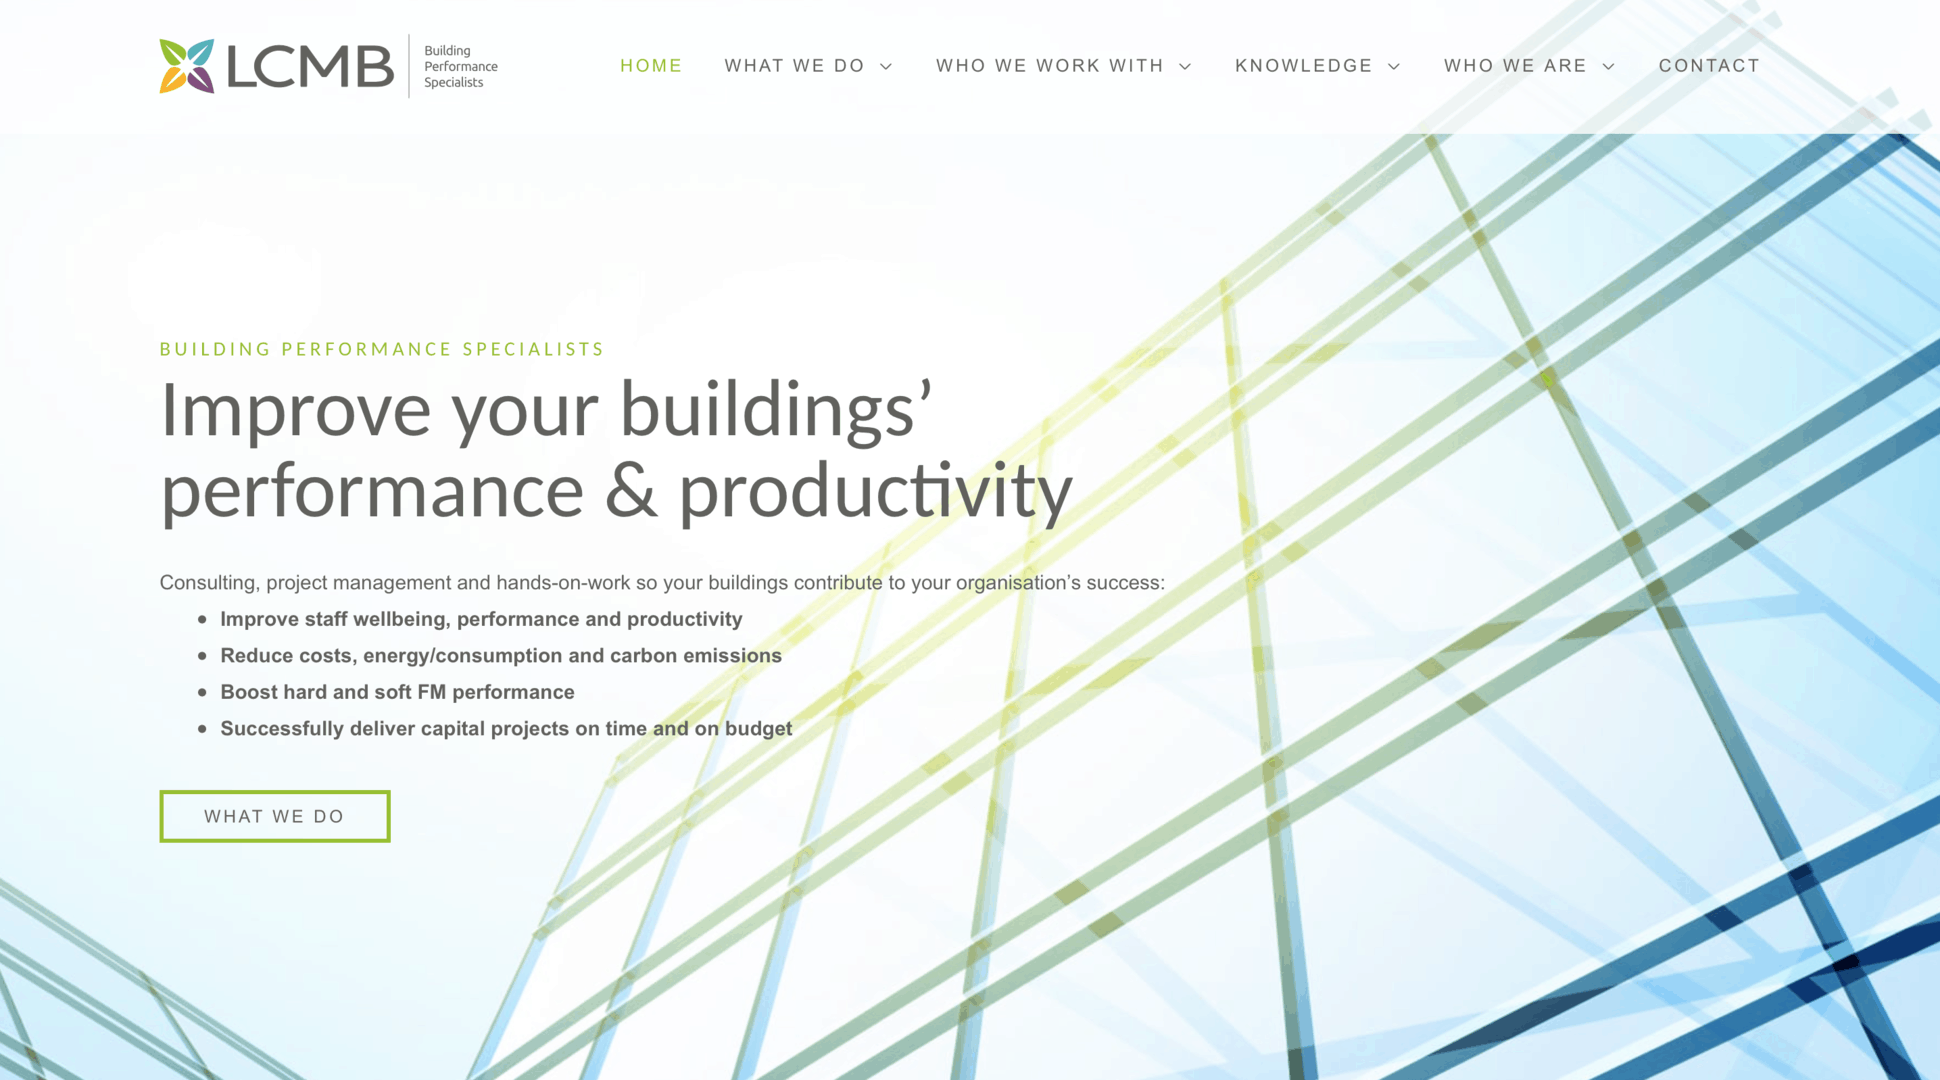 LCMB Buildings Performance Website